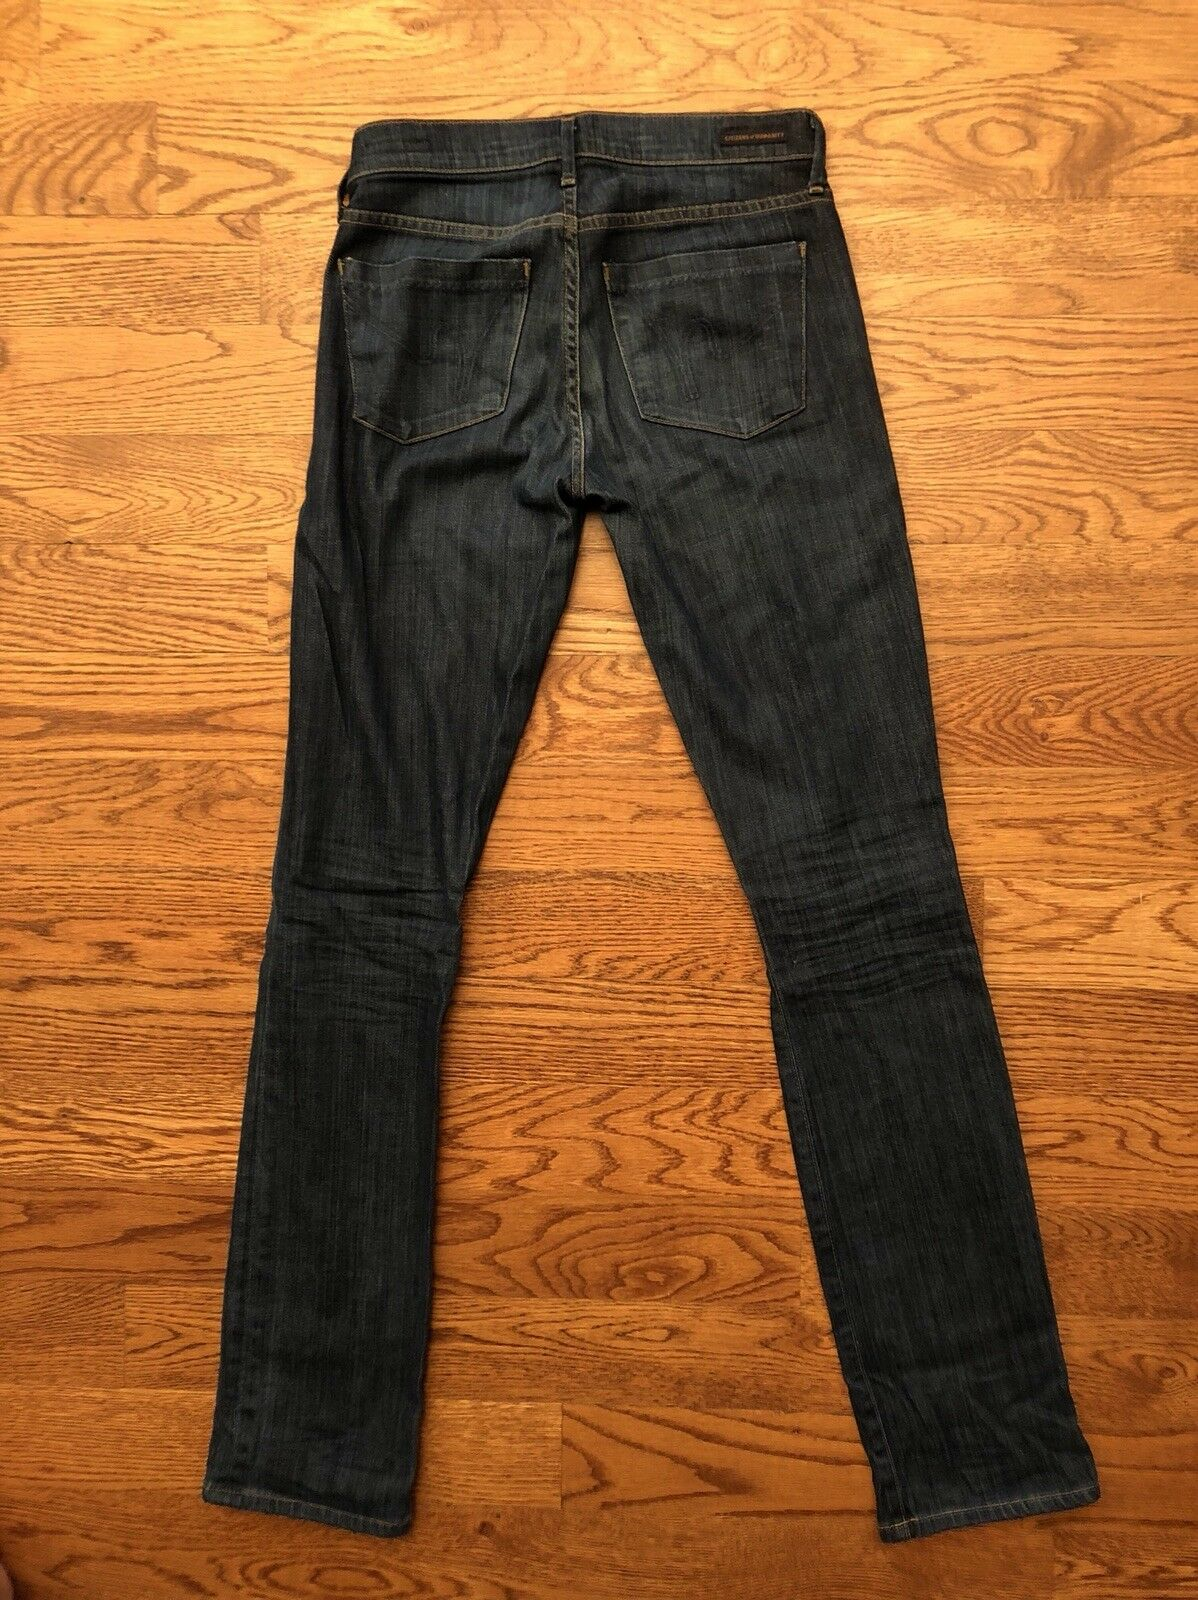 Womens Citizens Of Humanity Jeans ELSON Medium Rise Straight Leg Size 26